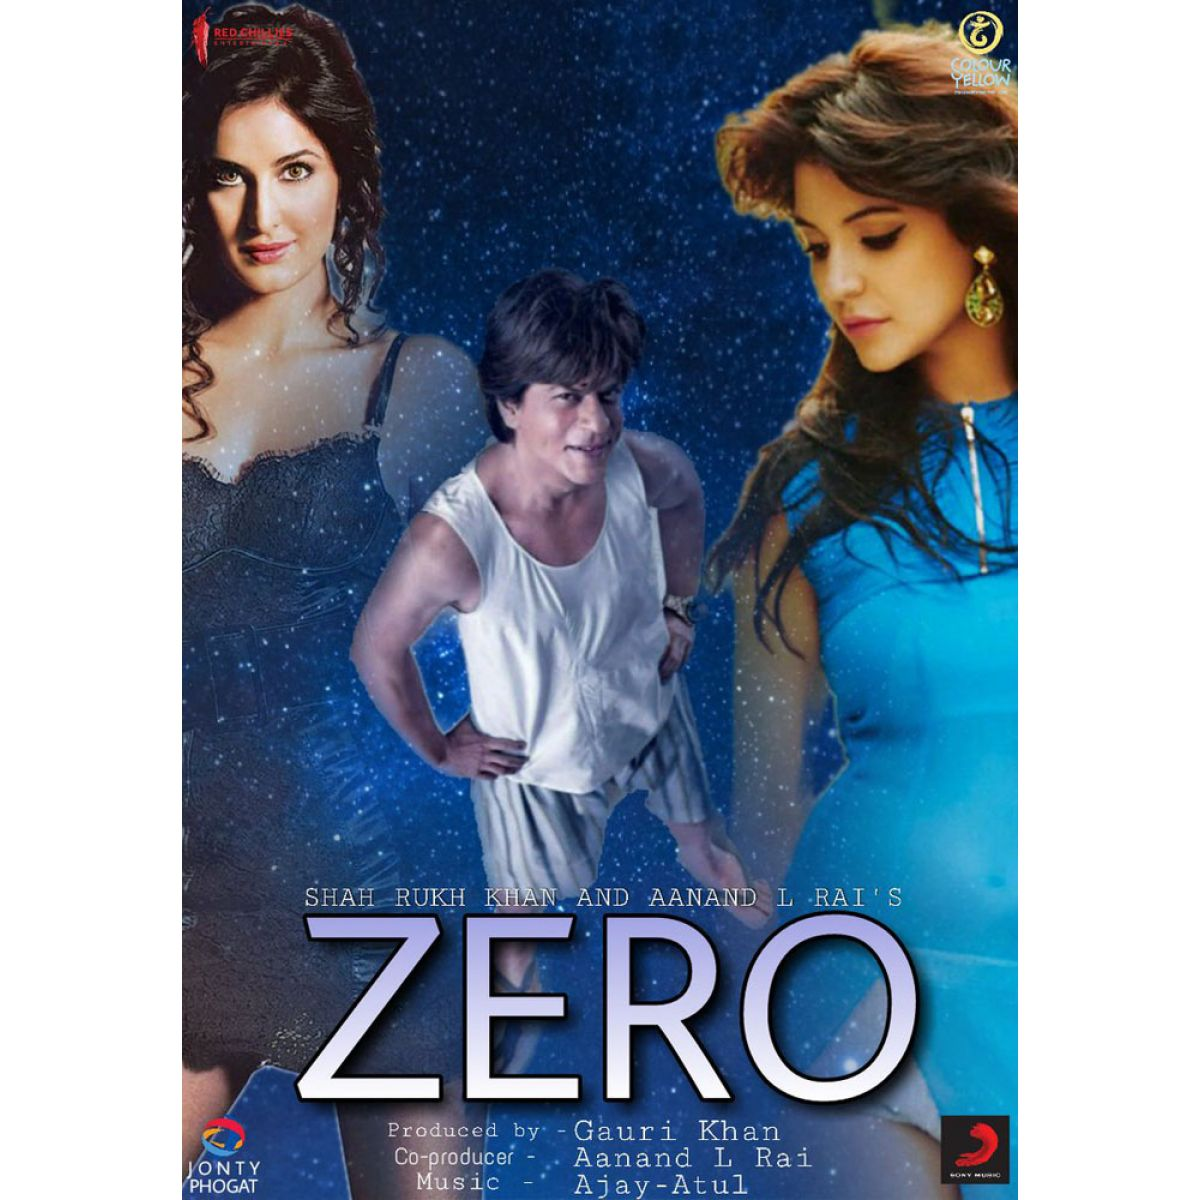 Hdmovies Download Zero Full Movie Leaked On Hdmoviesmaza720p Hd